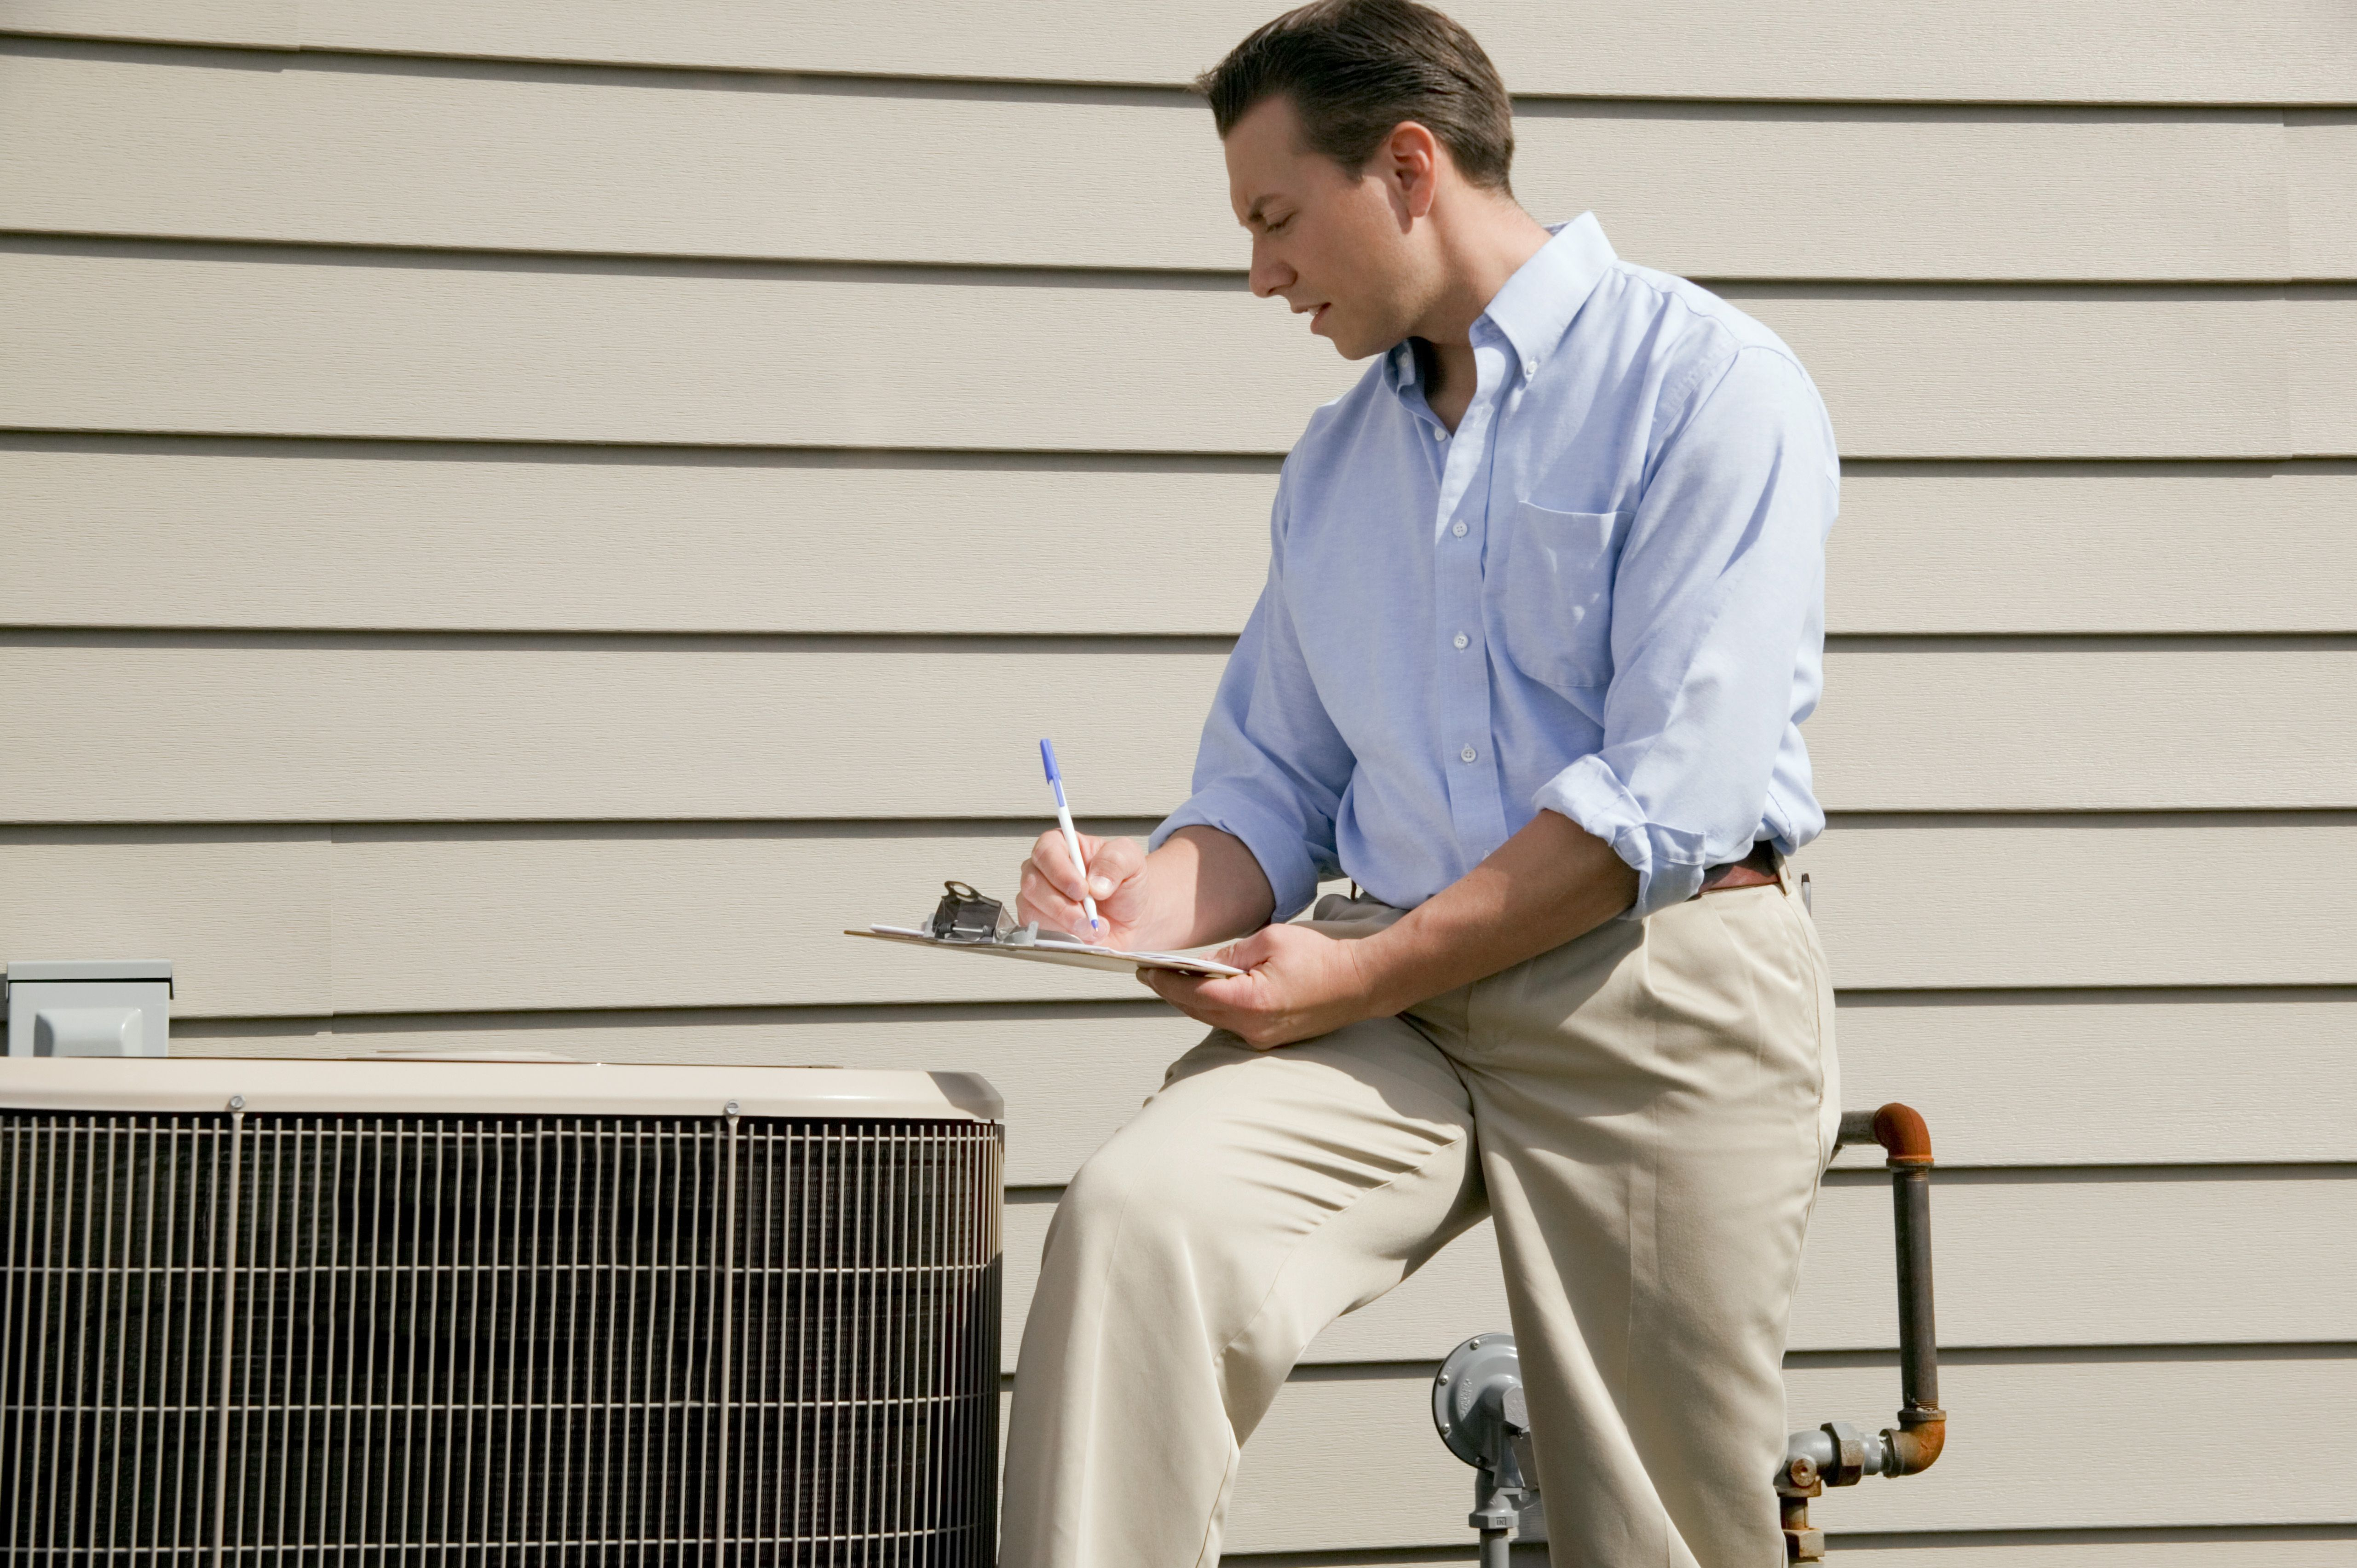 Quality Heating & Air in The Woodlands provides the